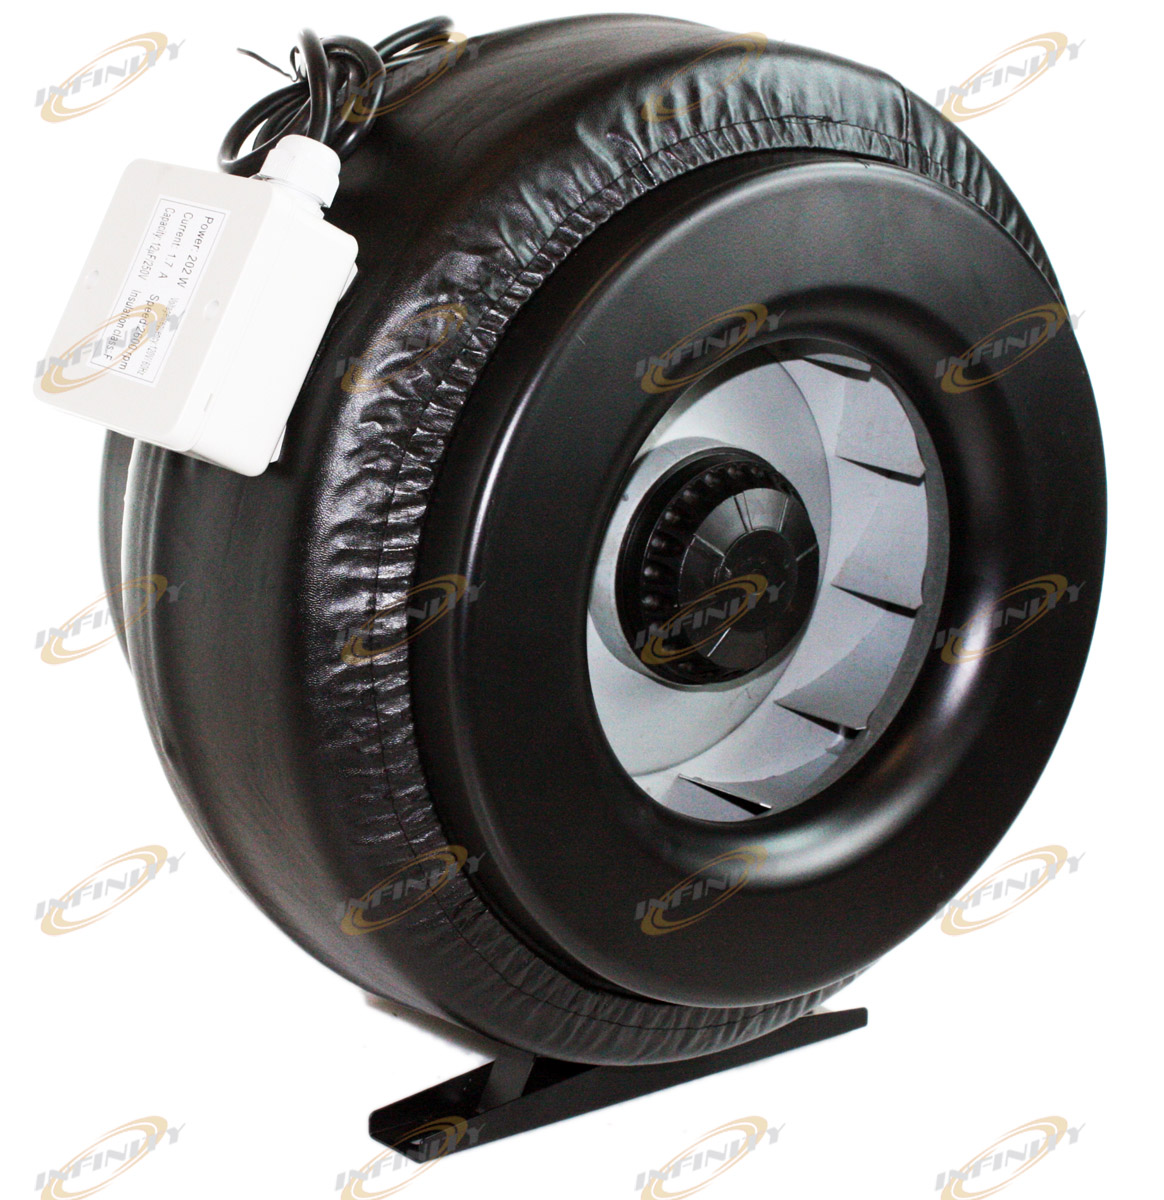 Inline Duct Fan Vent Exhaust Air Cooled Hydroponic Fan Blower 1200CFM #594E44